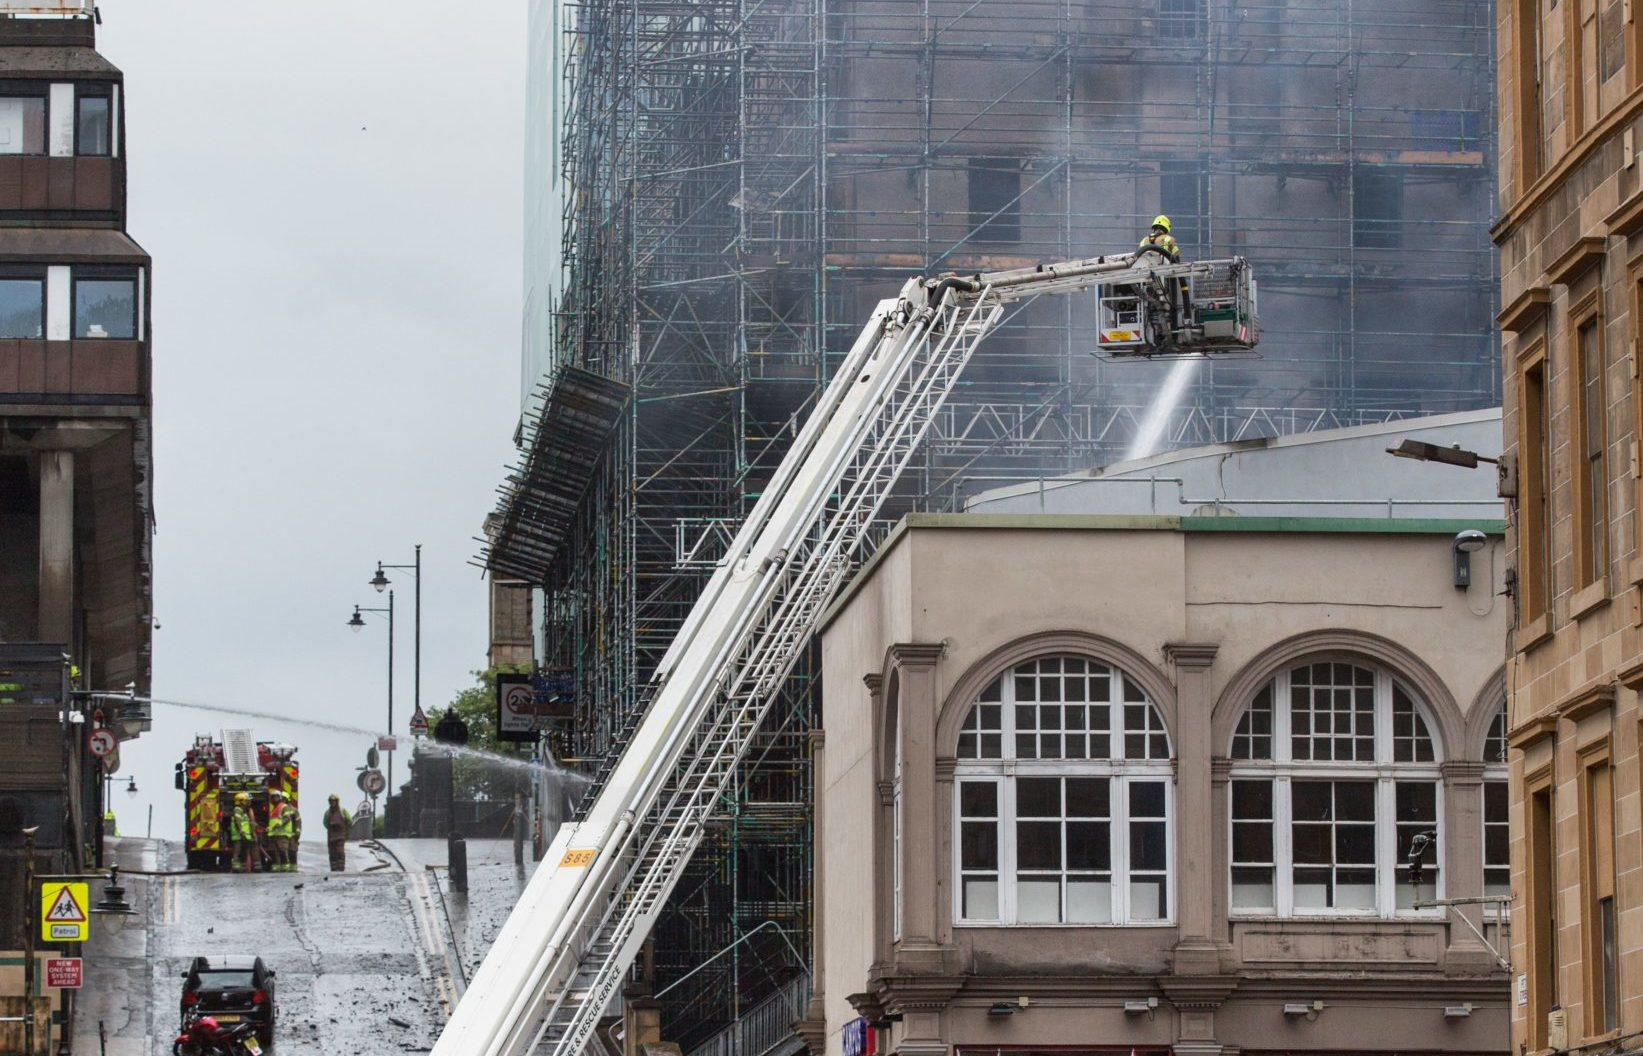 Firefighters attending the scene of the 2018 fire at the Glasgow School of Art's Mackintosh building